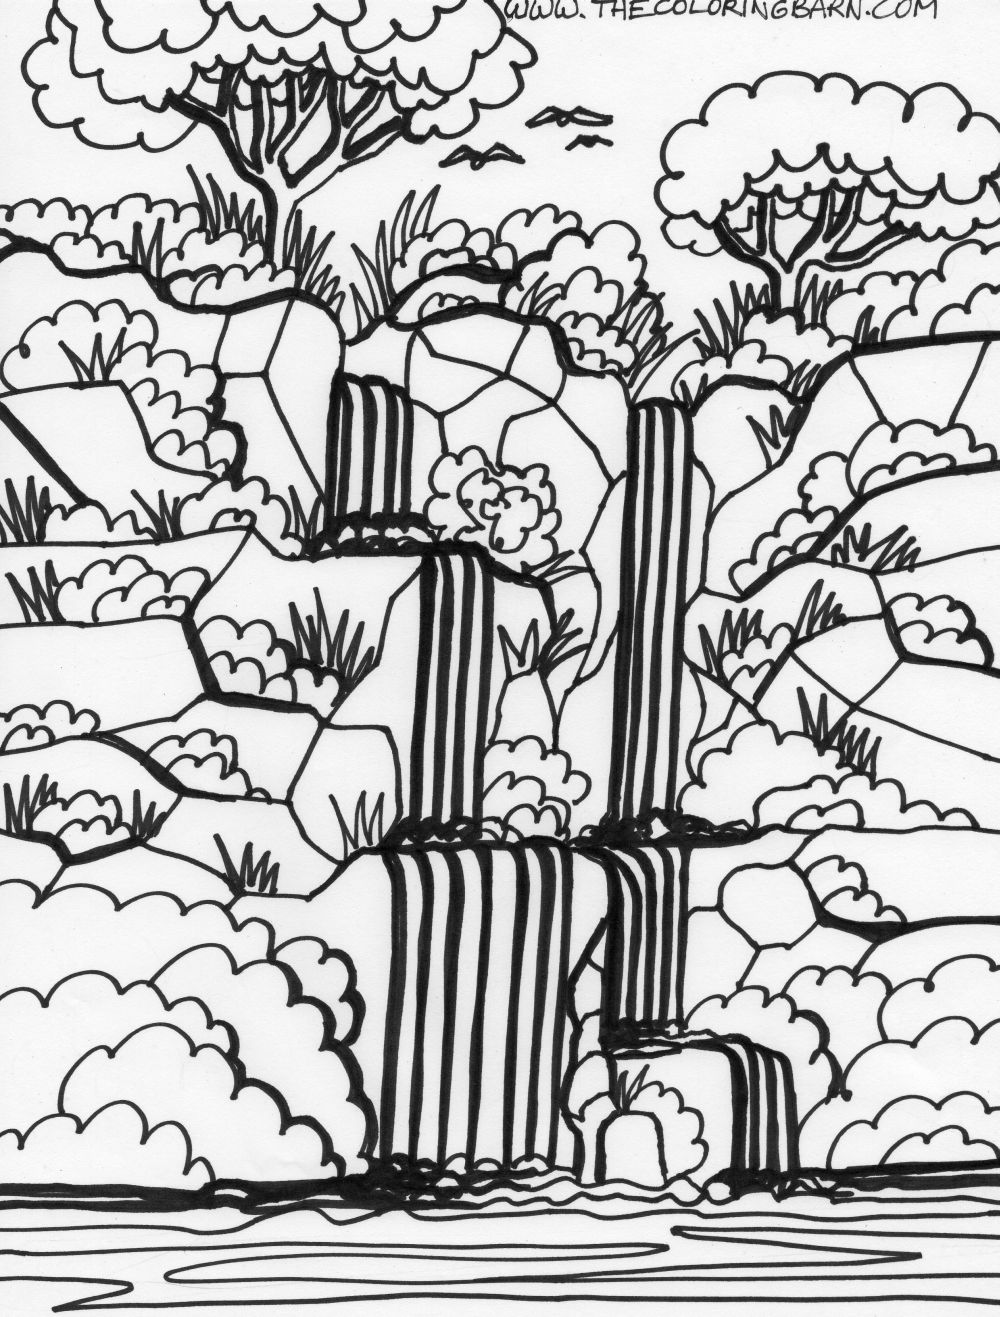 Jungle animals coloring pages for kids - Rainforest Coloring Sheets Free Pages Endangered Parrot Animal Coloring Page